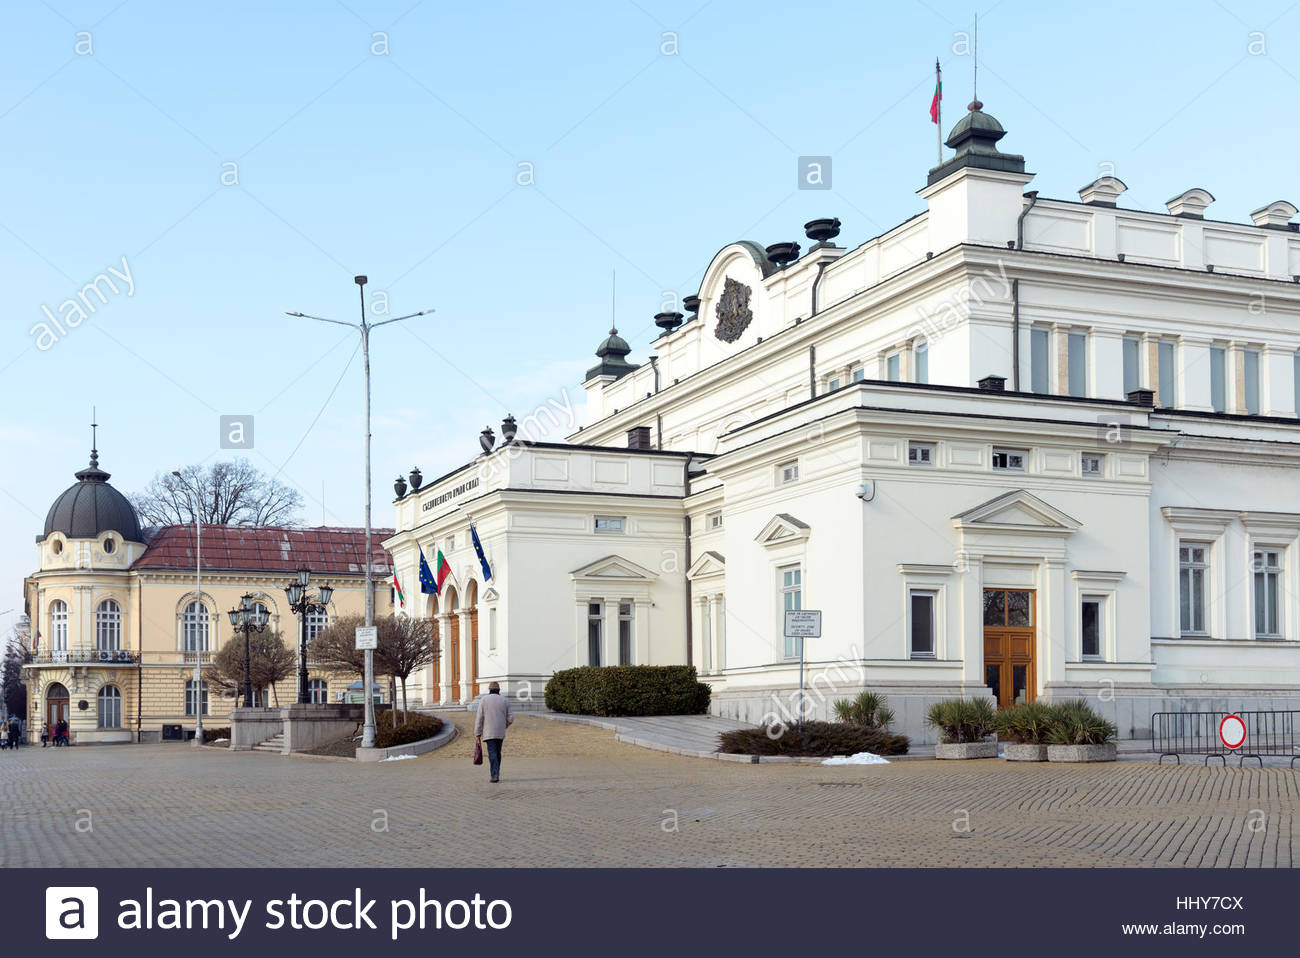 The National Assembly of the Republic of Bulgaria, Sofia - Stock Image